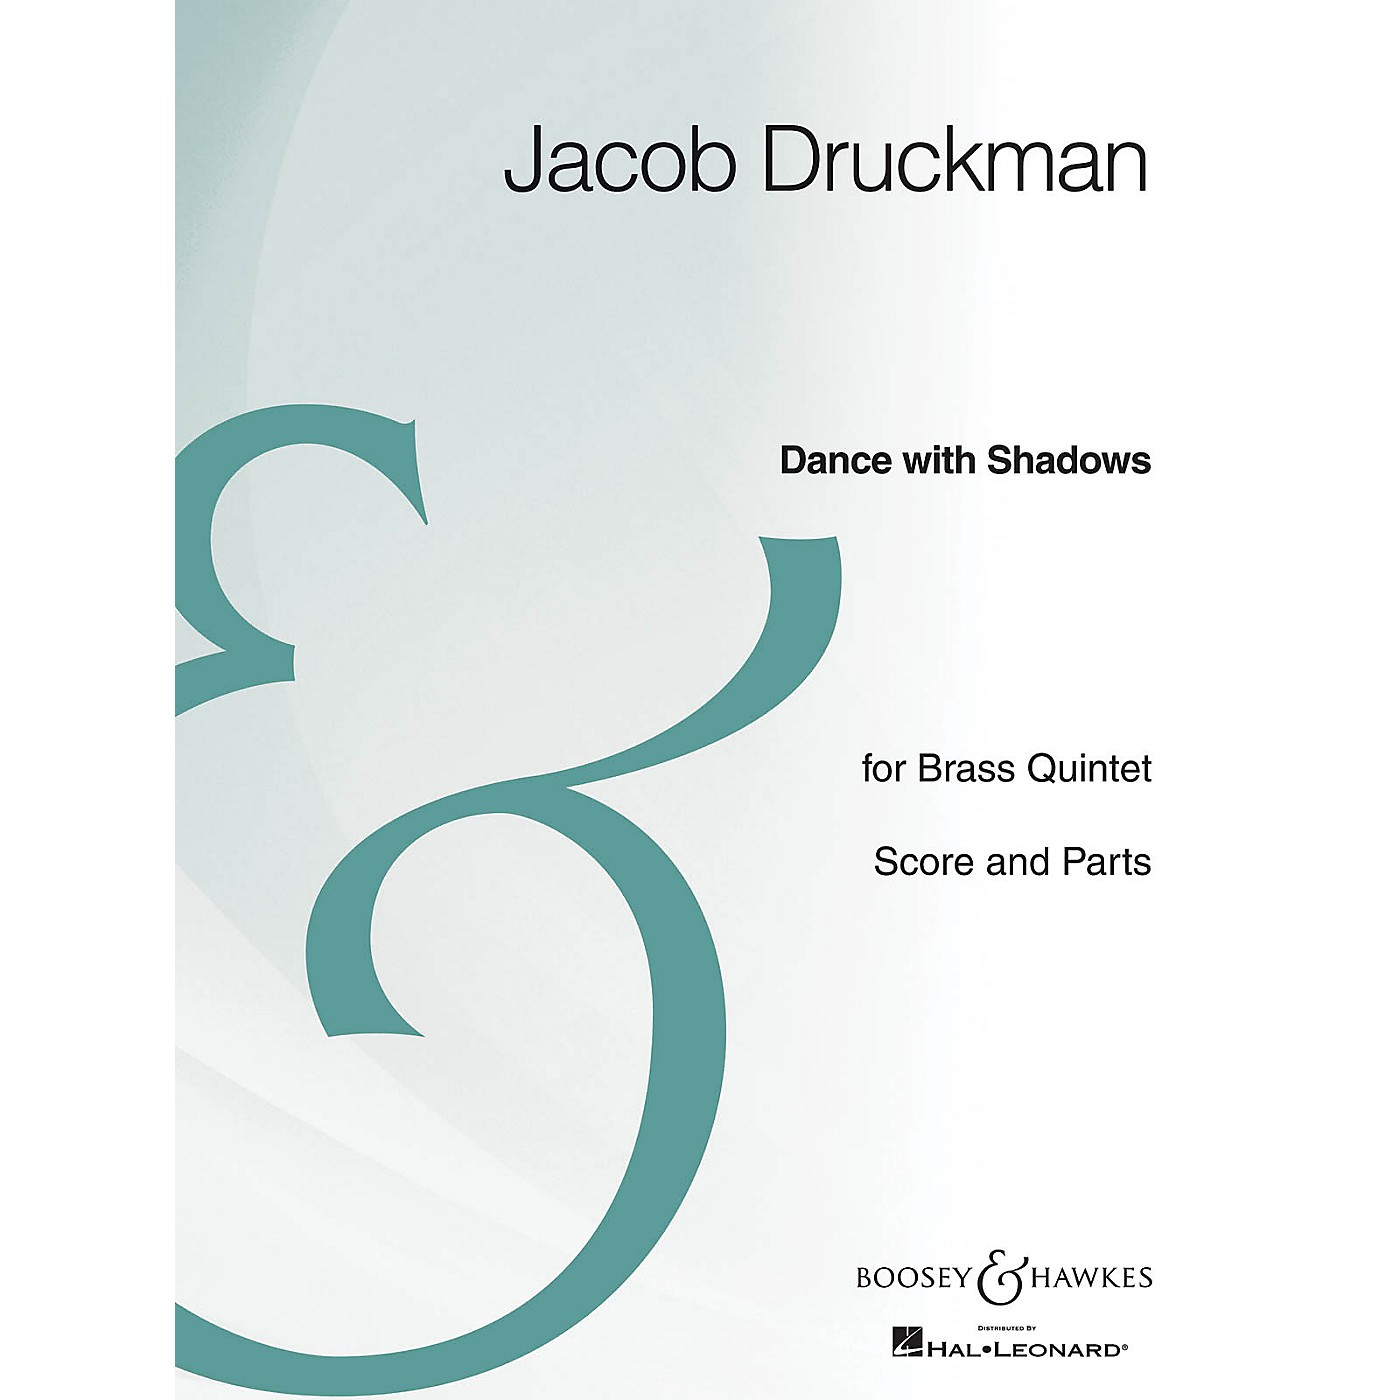 Boosey and Hawkes Dance with Shadows (Brass Quintet Archive Edition) Boosey & Hawkes Chamber Music Series by Jacob Druckman thumbnail